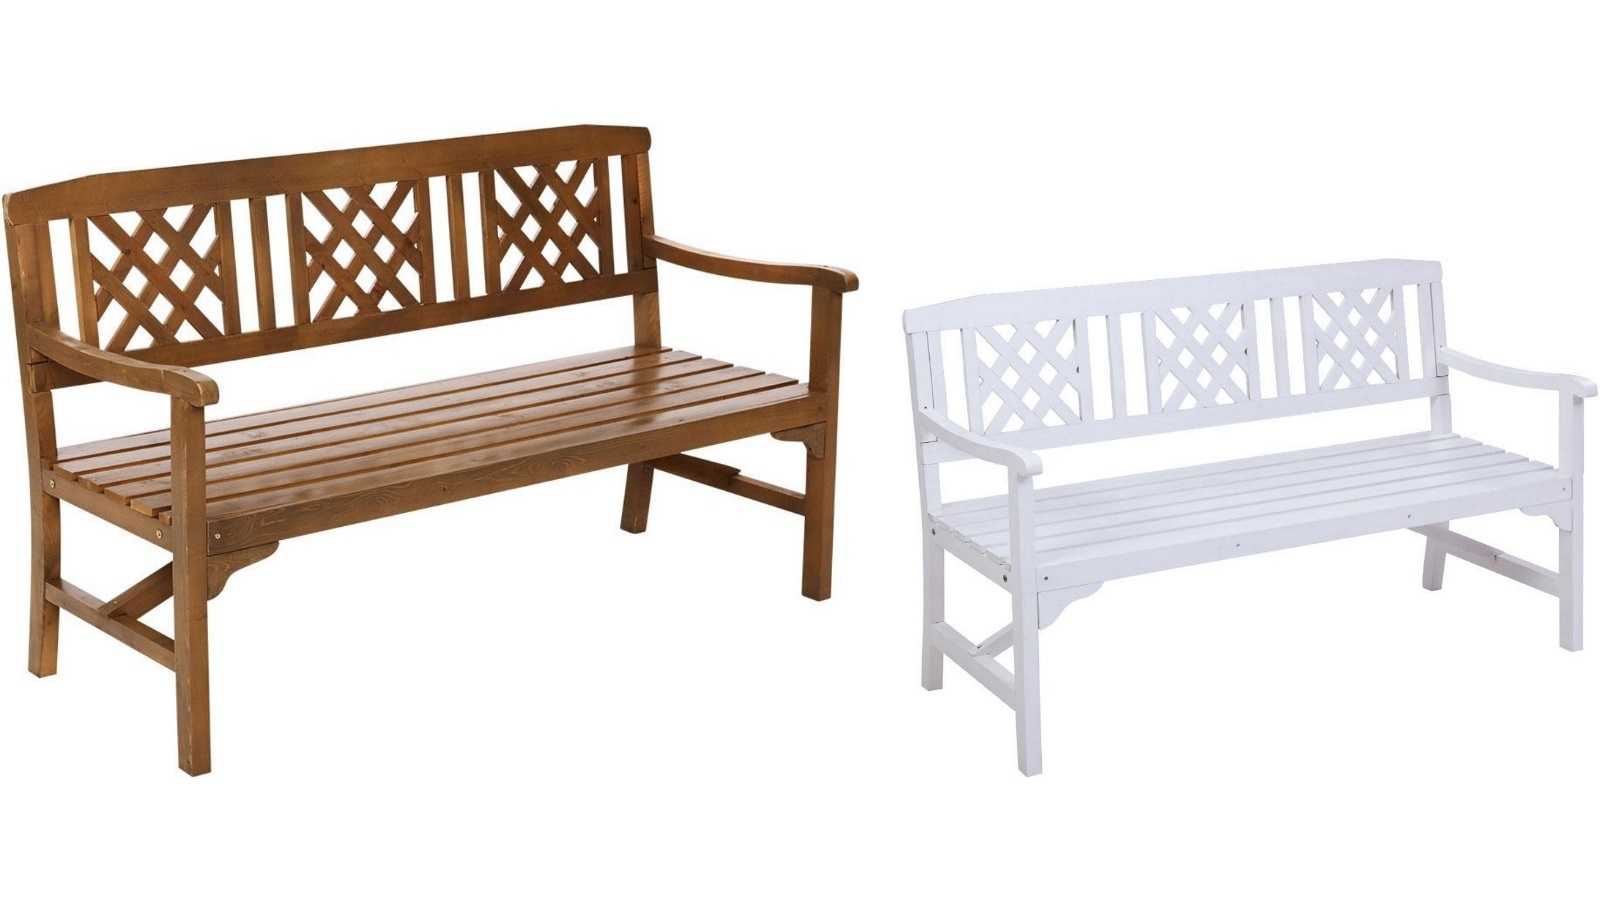 Buy Gardeon 3 Seat Outdoor Wooden Bench Chair Harvey Norman Au